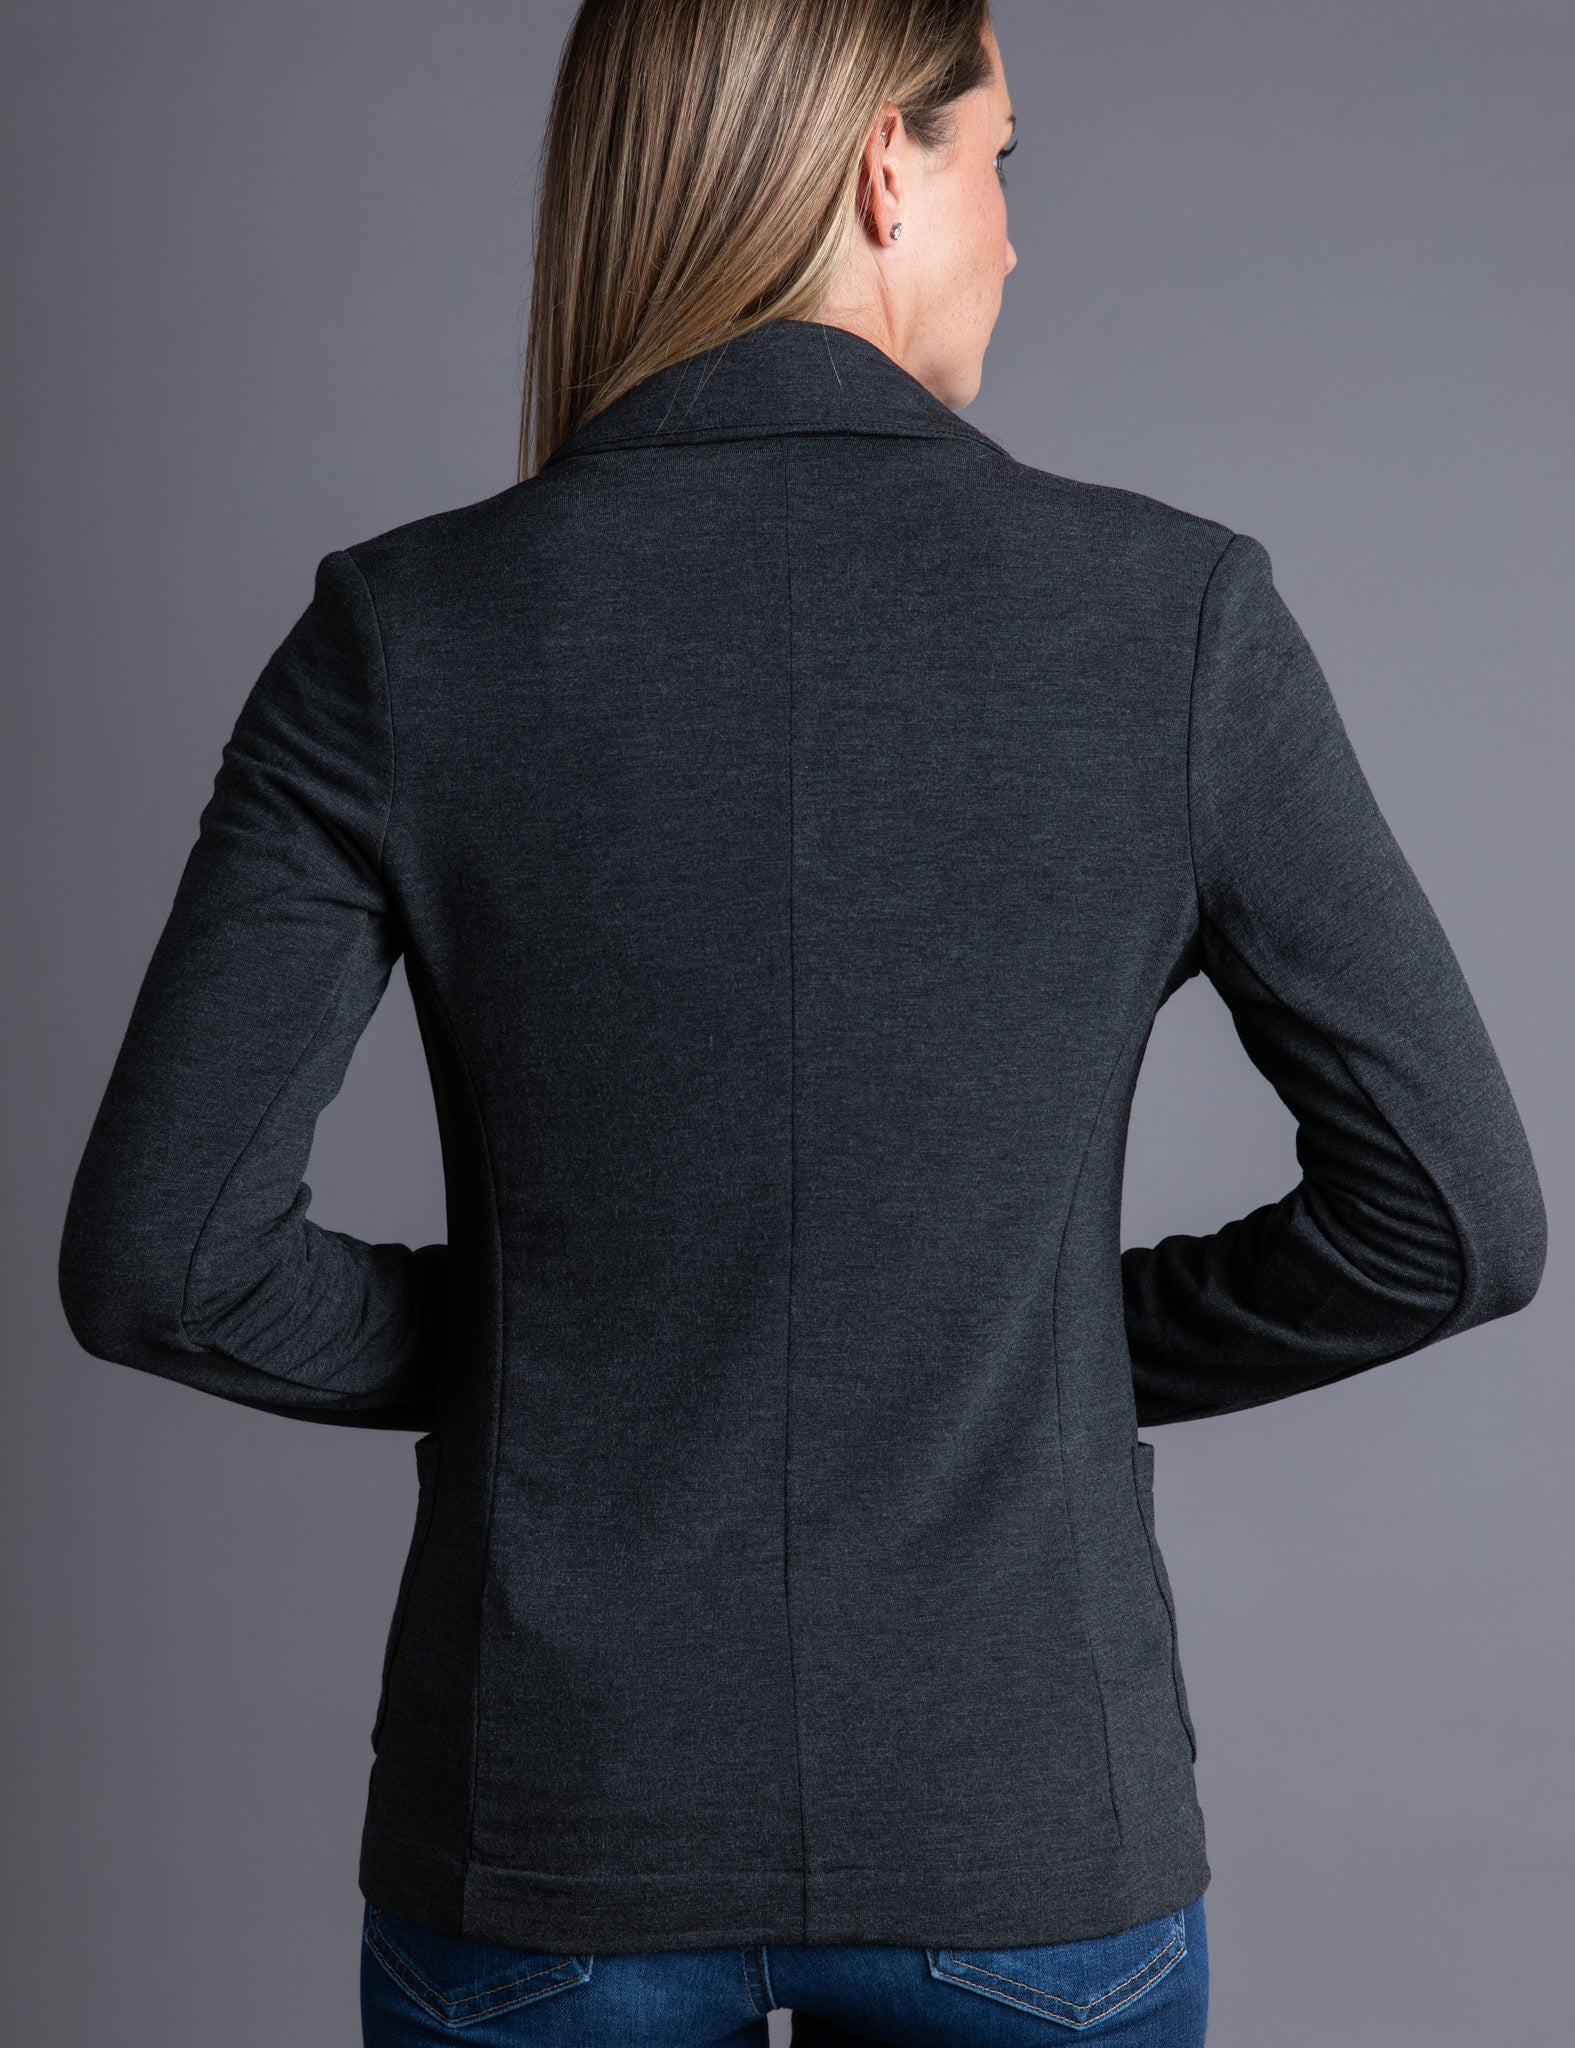 Majestic French Touch One Button Blazer in Anthracite